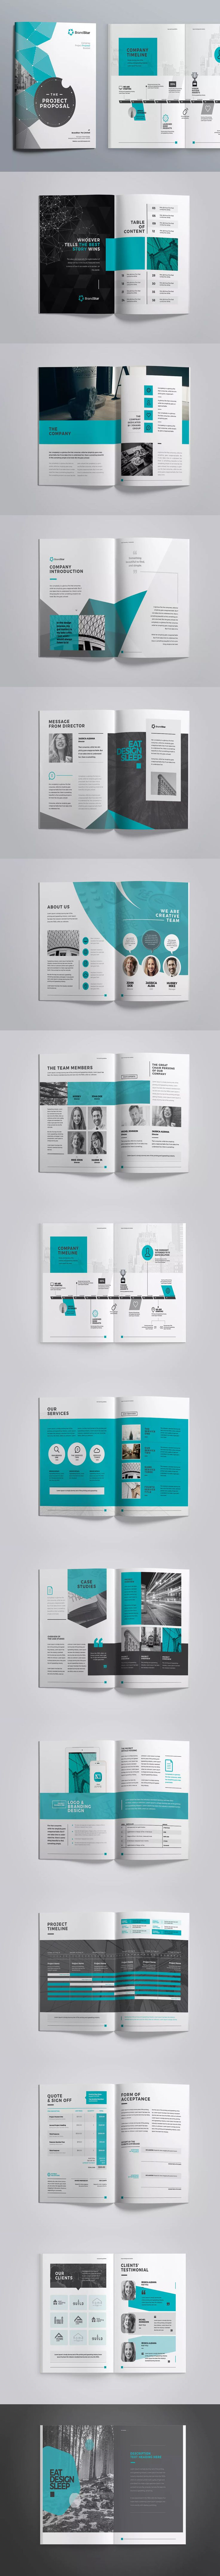 Project Proposal Template InDesign INDD US Letter and